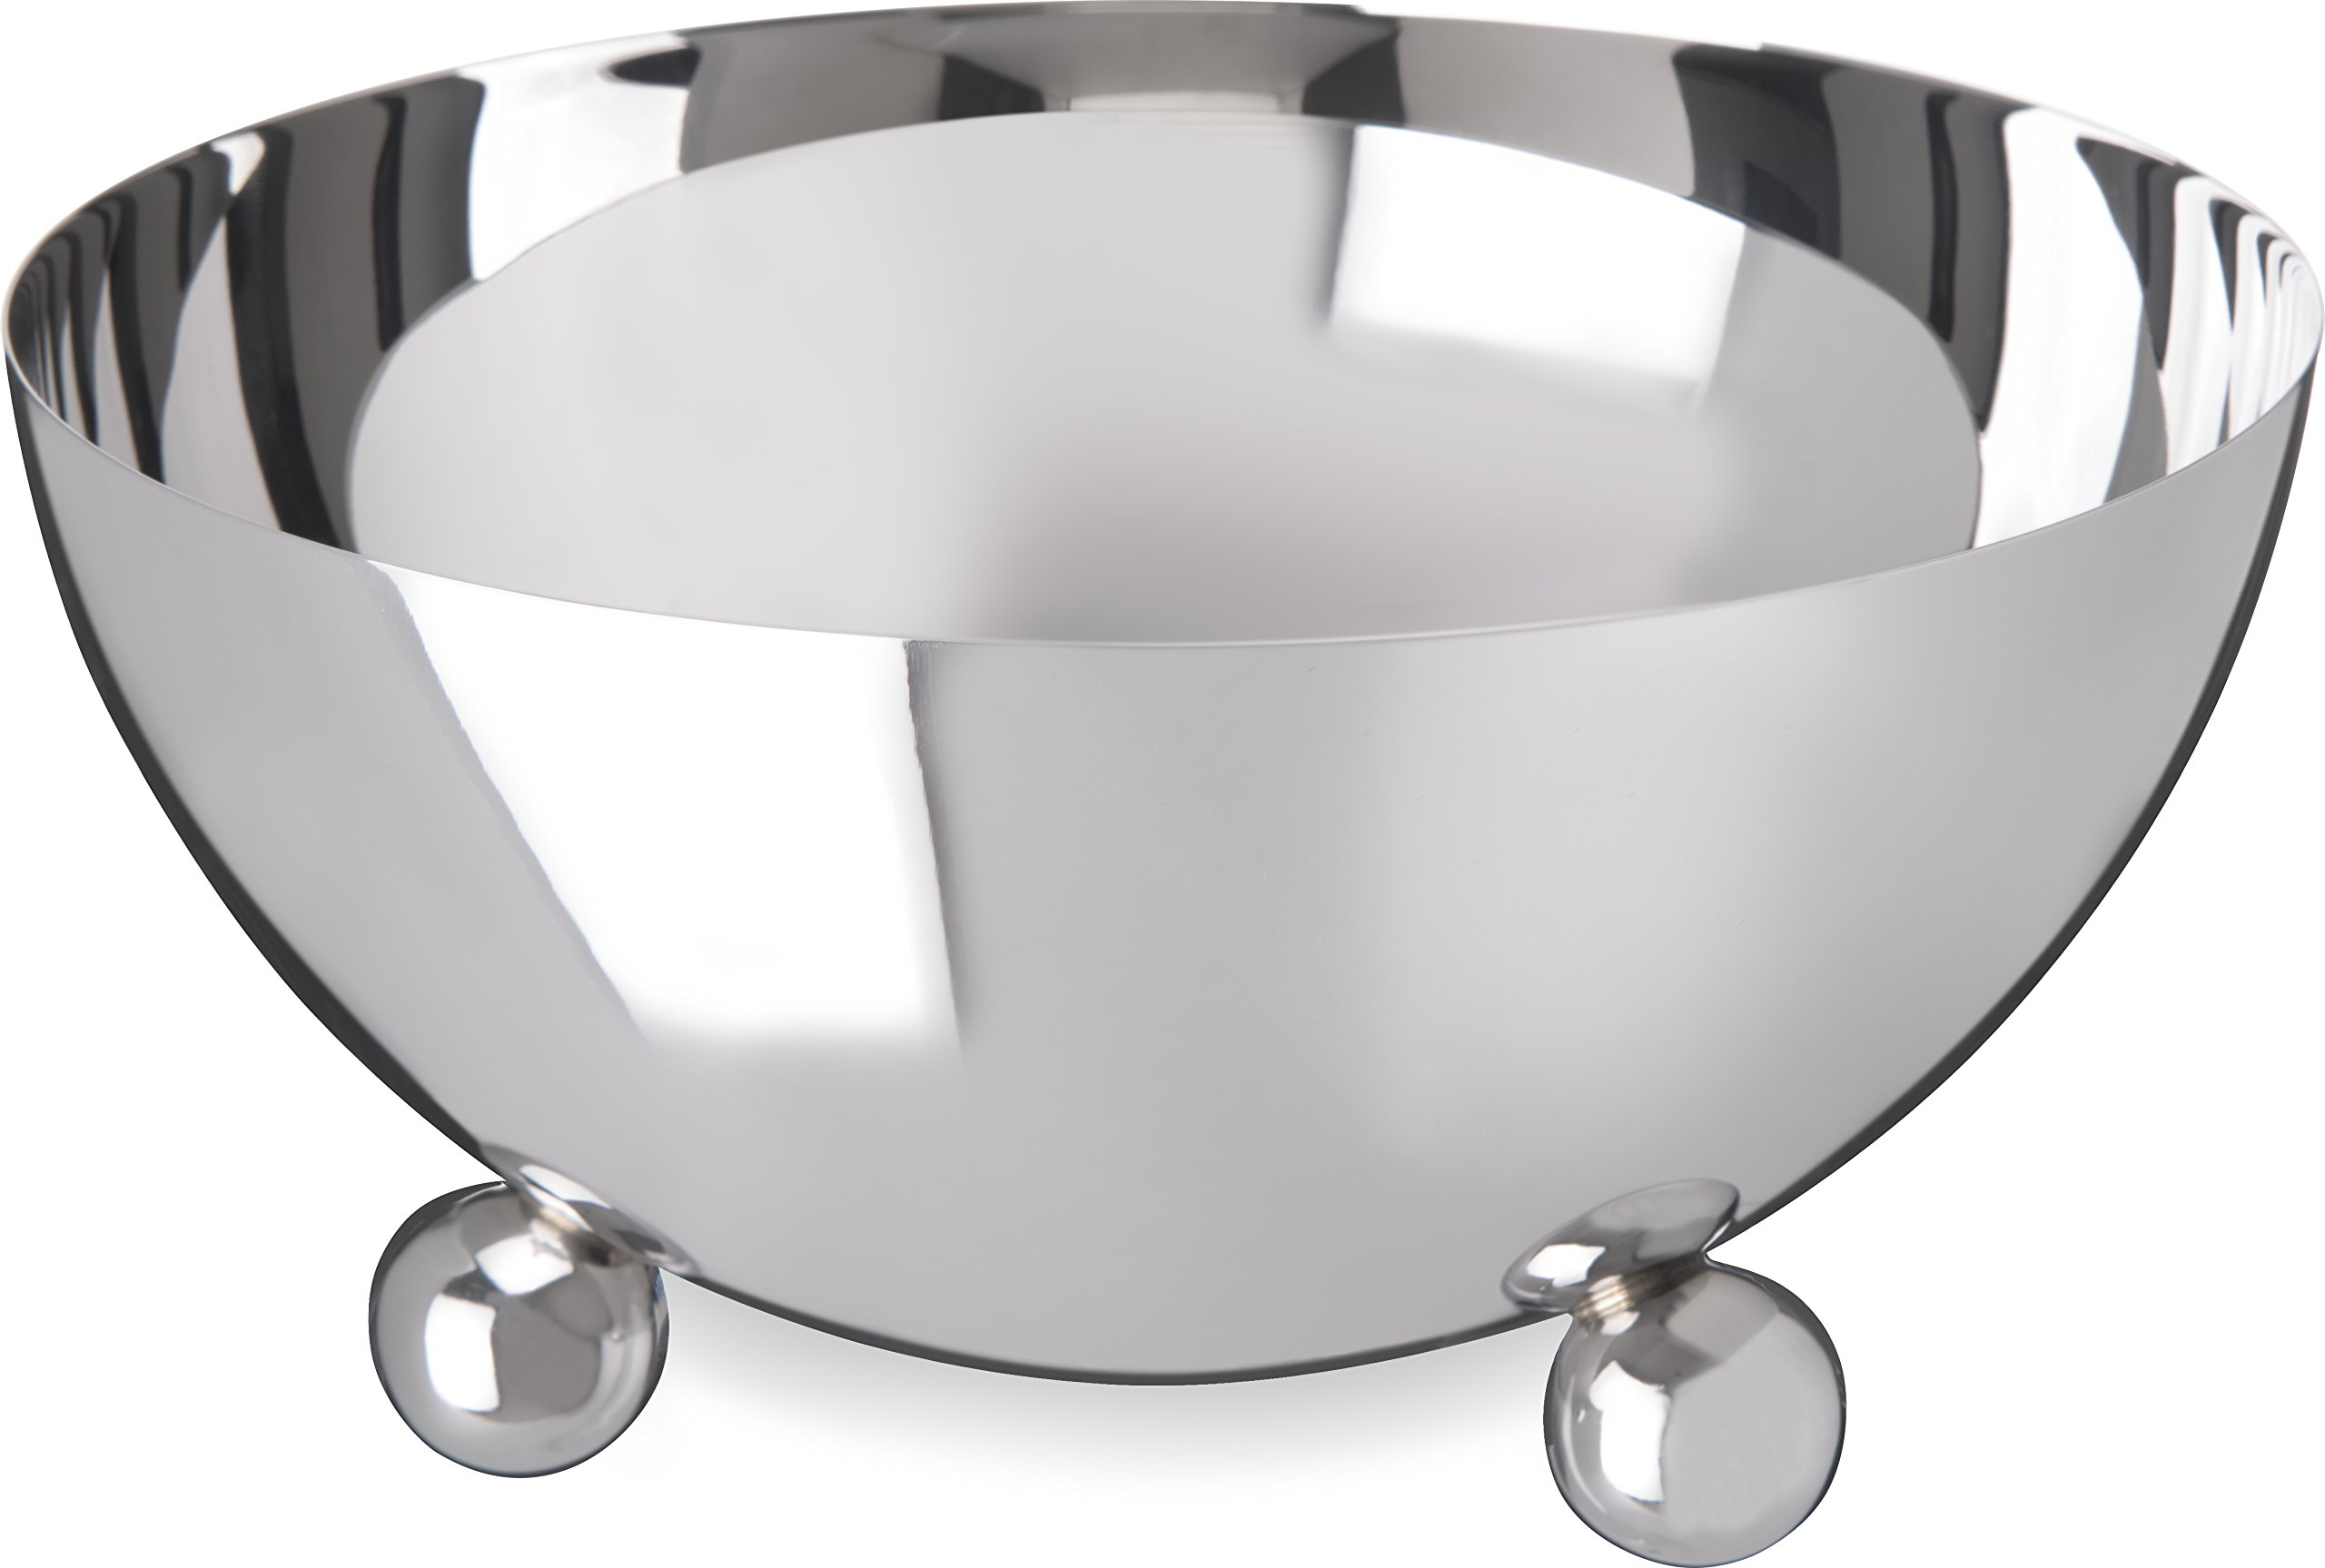 Carlisle 609173 Allegro Stainless Steel 18-10 Display Bowl, 48 fl. oz. Capacity, 7'' Dia. x 3-3/4'' H (Case of 3) by Carlisle